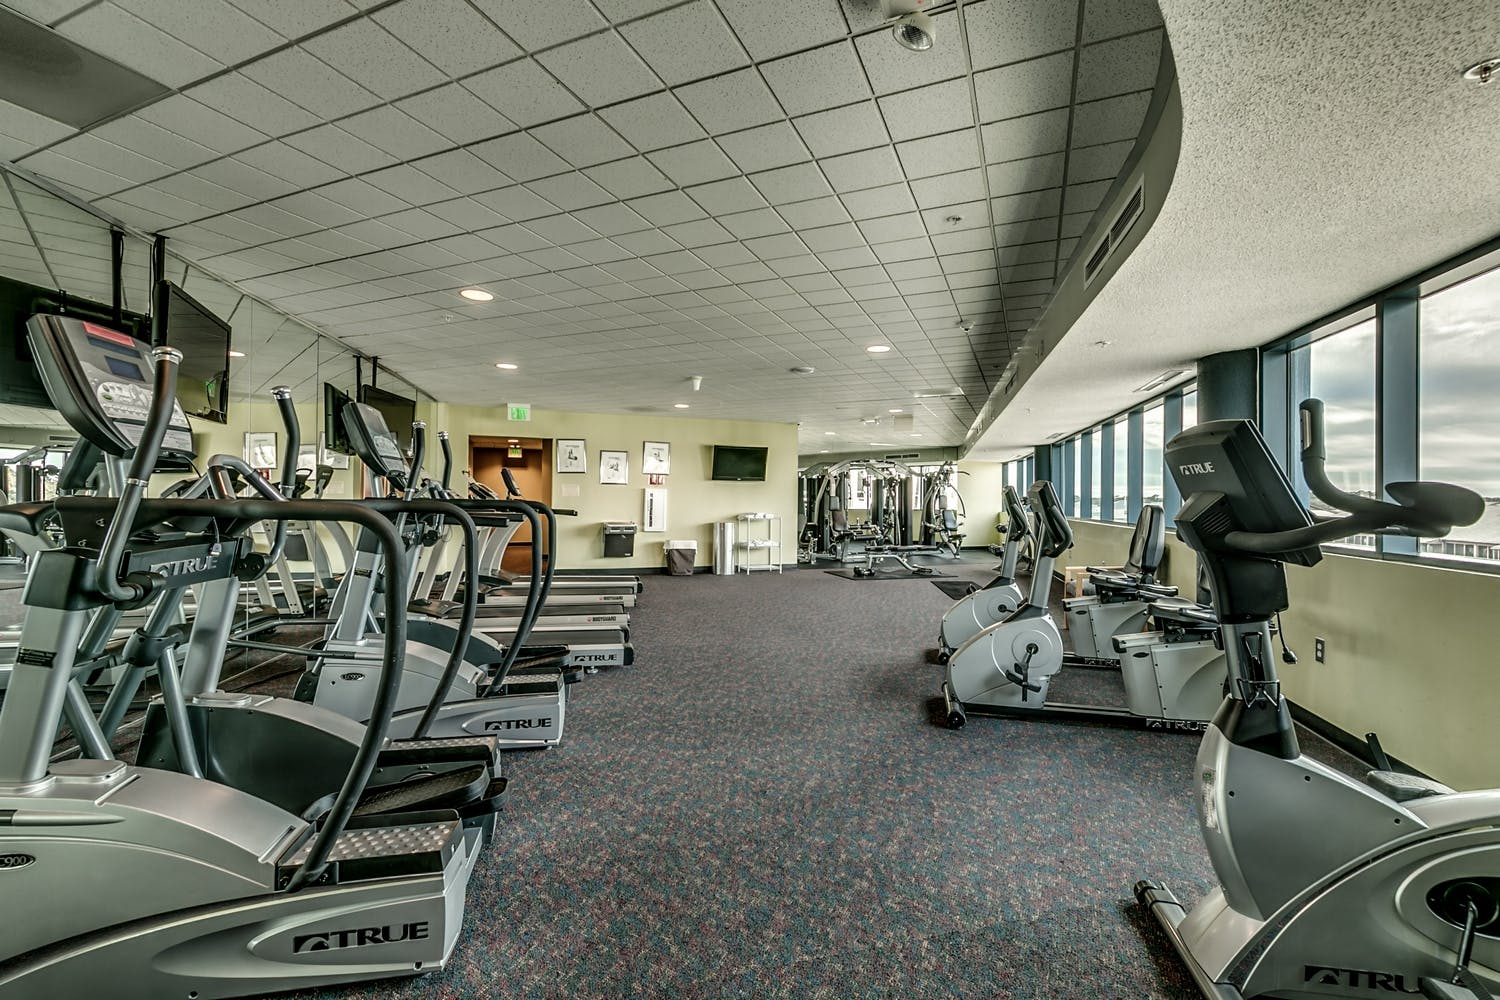 On-site fitness room located on the 4th floor